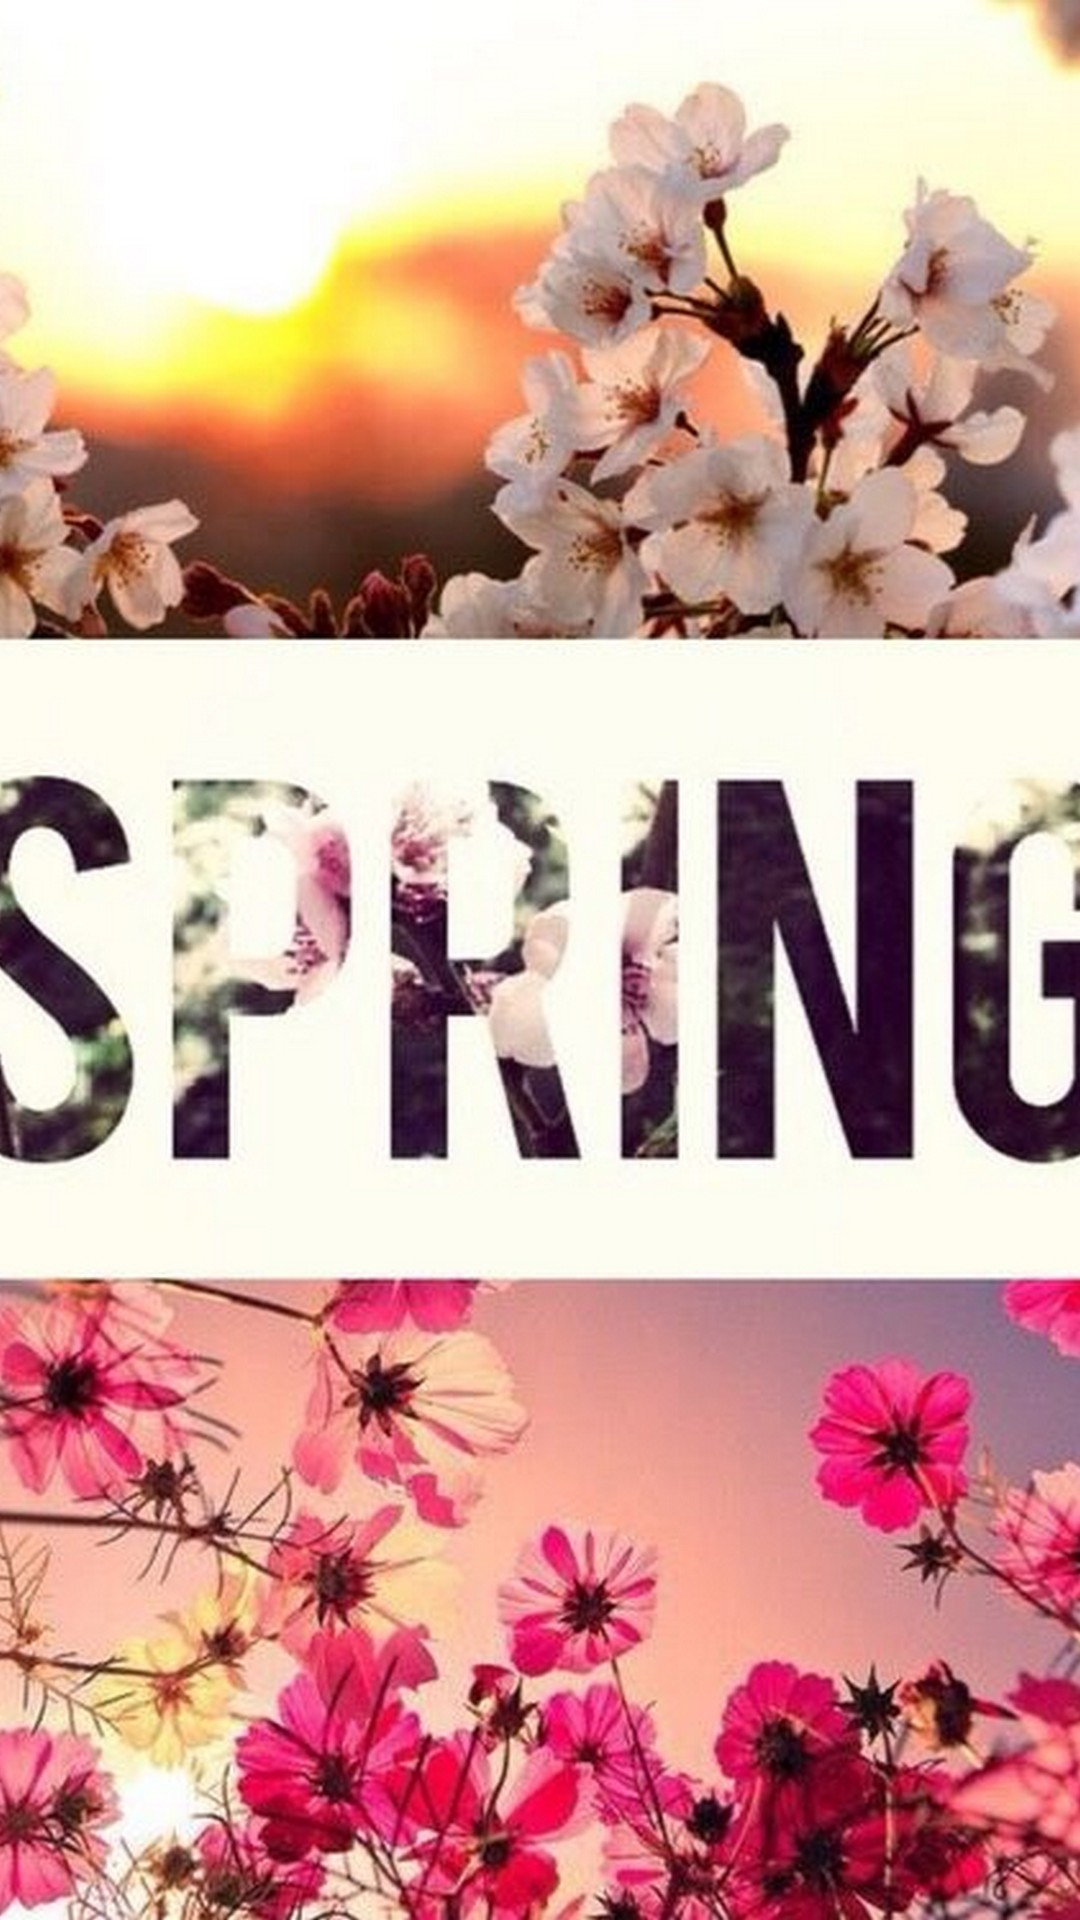 Wallpaper Hello Spring Android   2020 Android Wallpapers 1080x1920